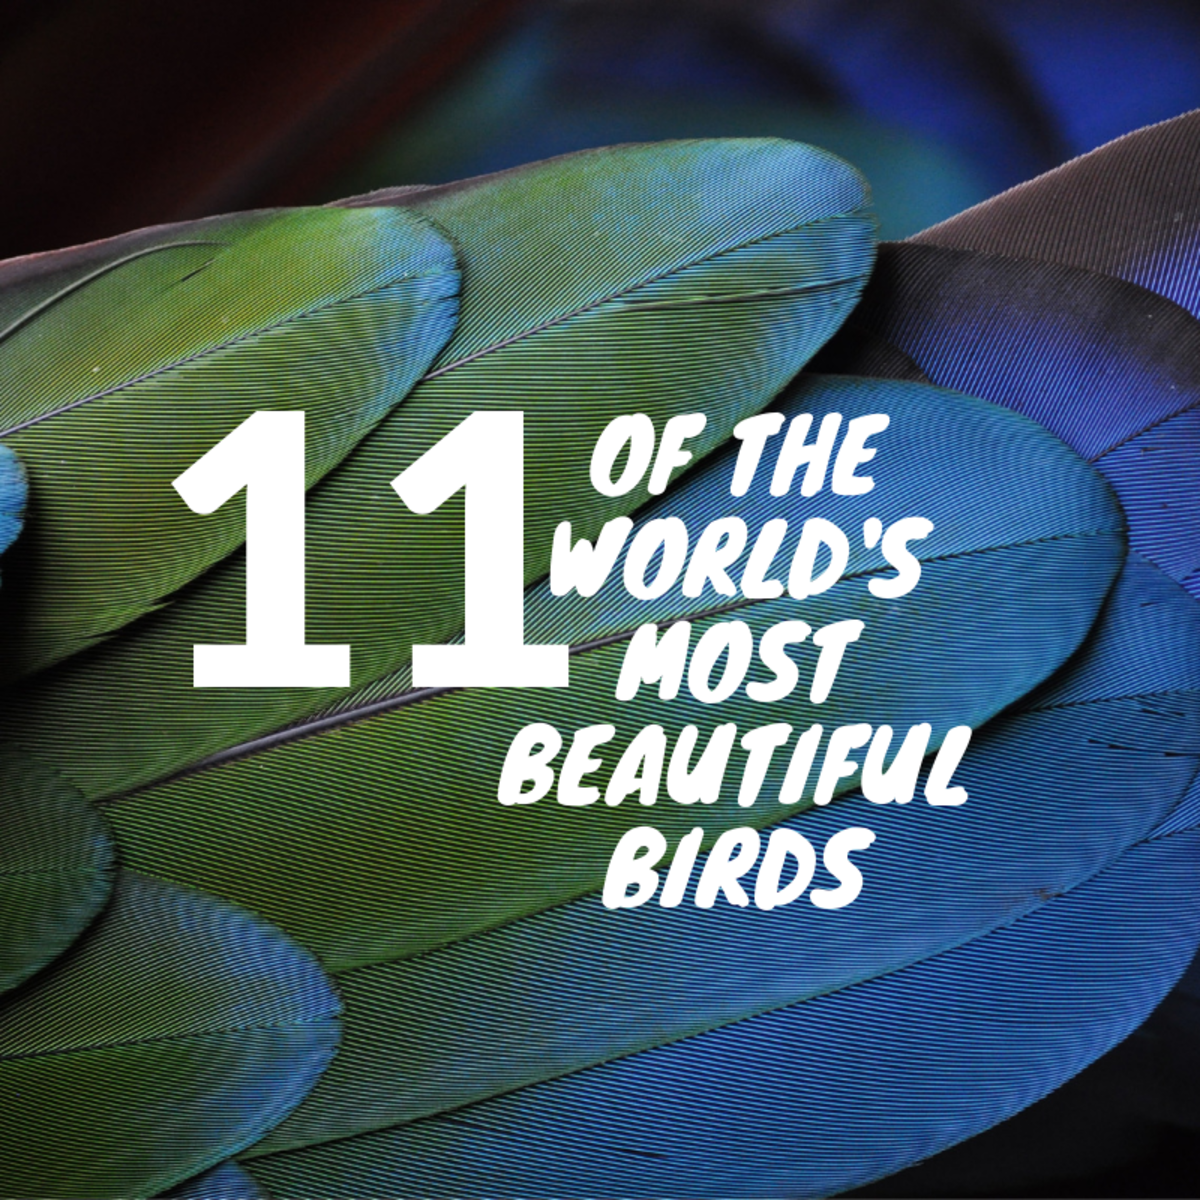 The World's 11 Most Beautiful Birds